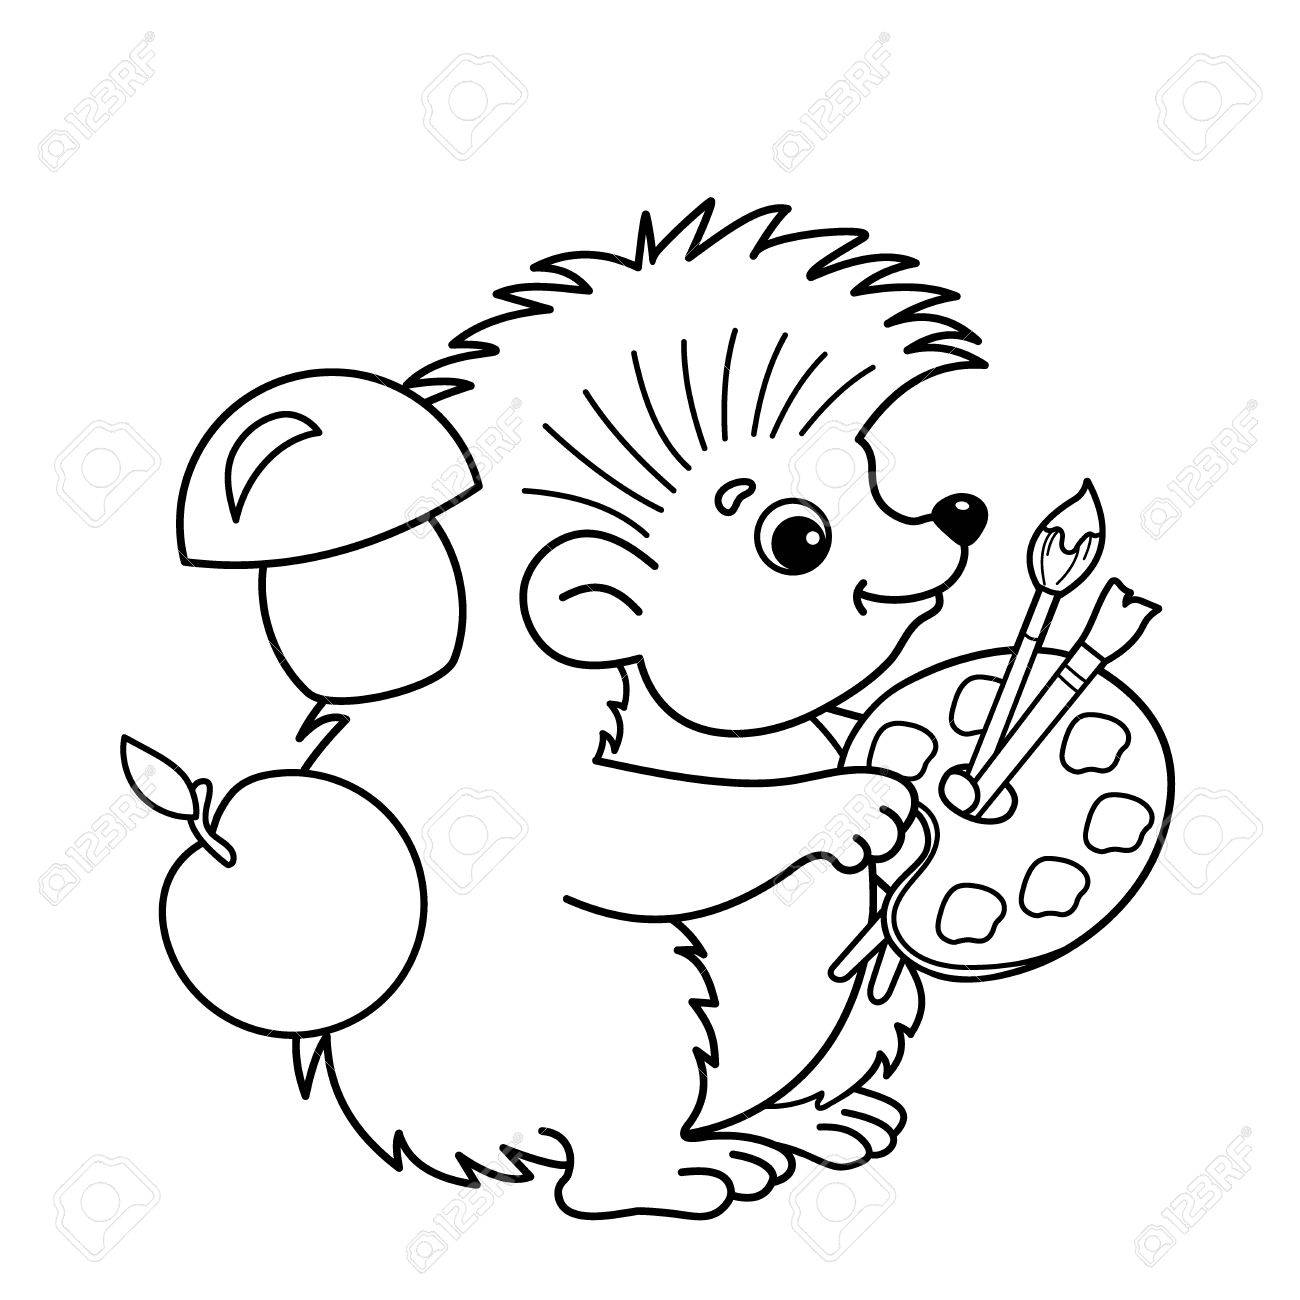 Coloring page outline of cartoon hedgehog with brushes and paints coloring book for kids stock